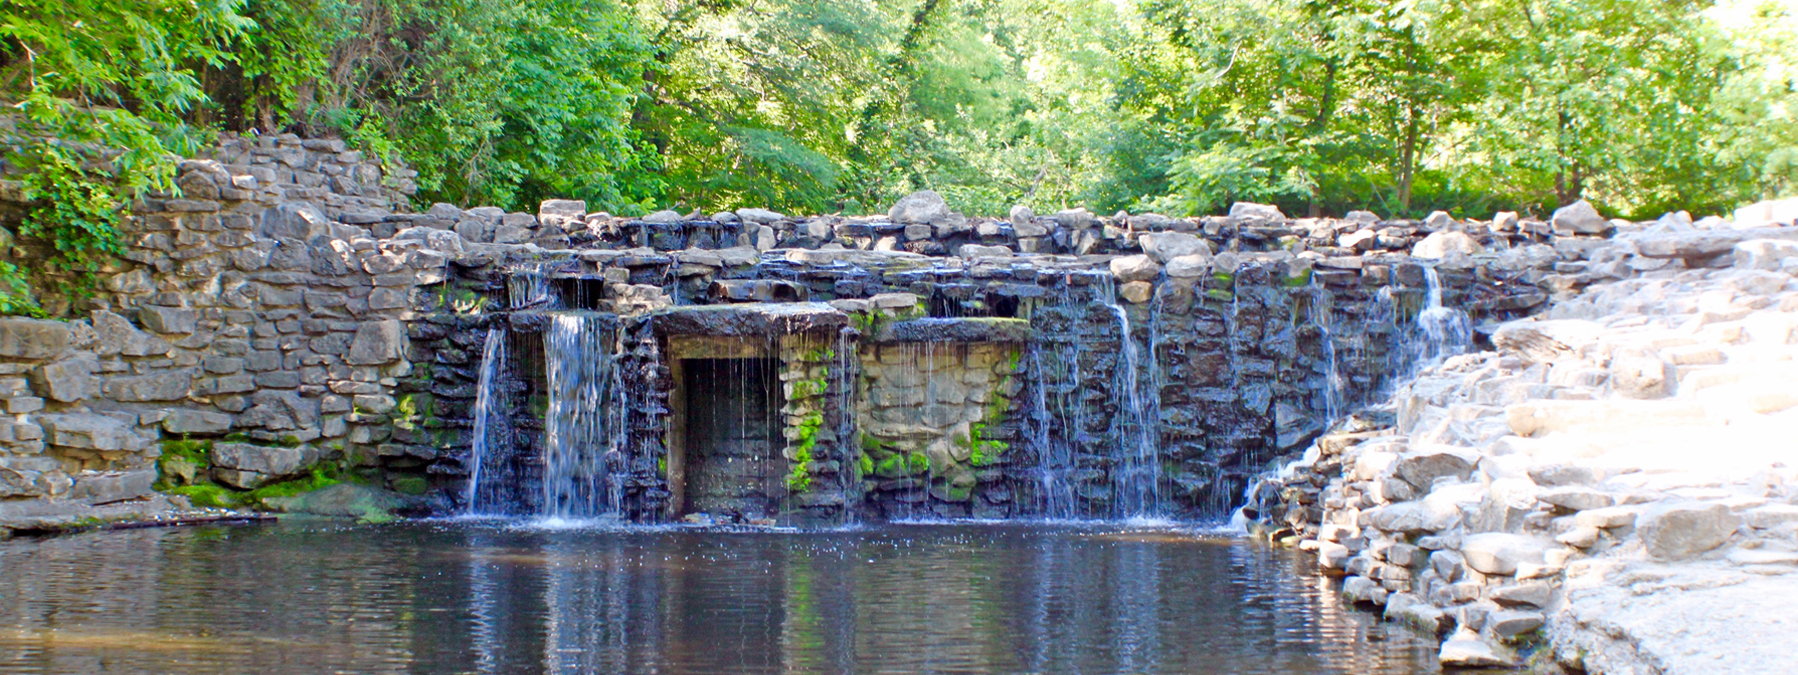 Canyon Creek HOA Waterfall